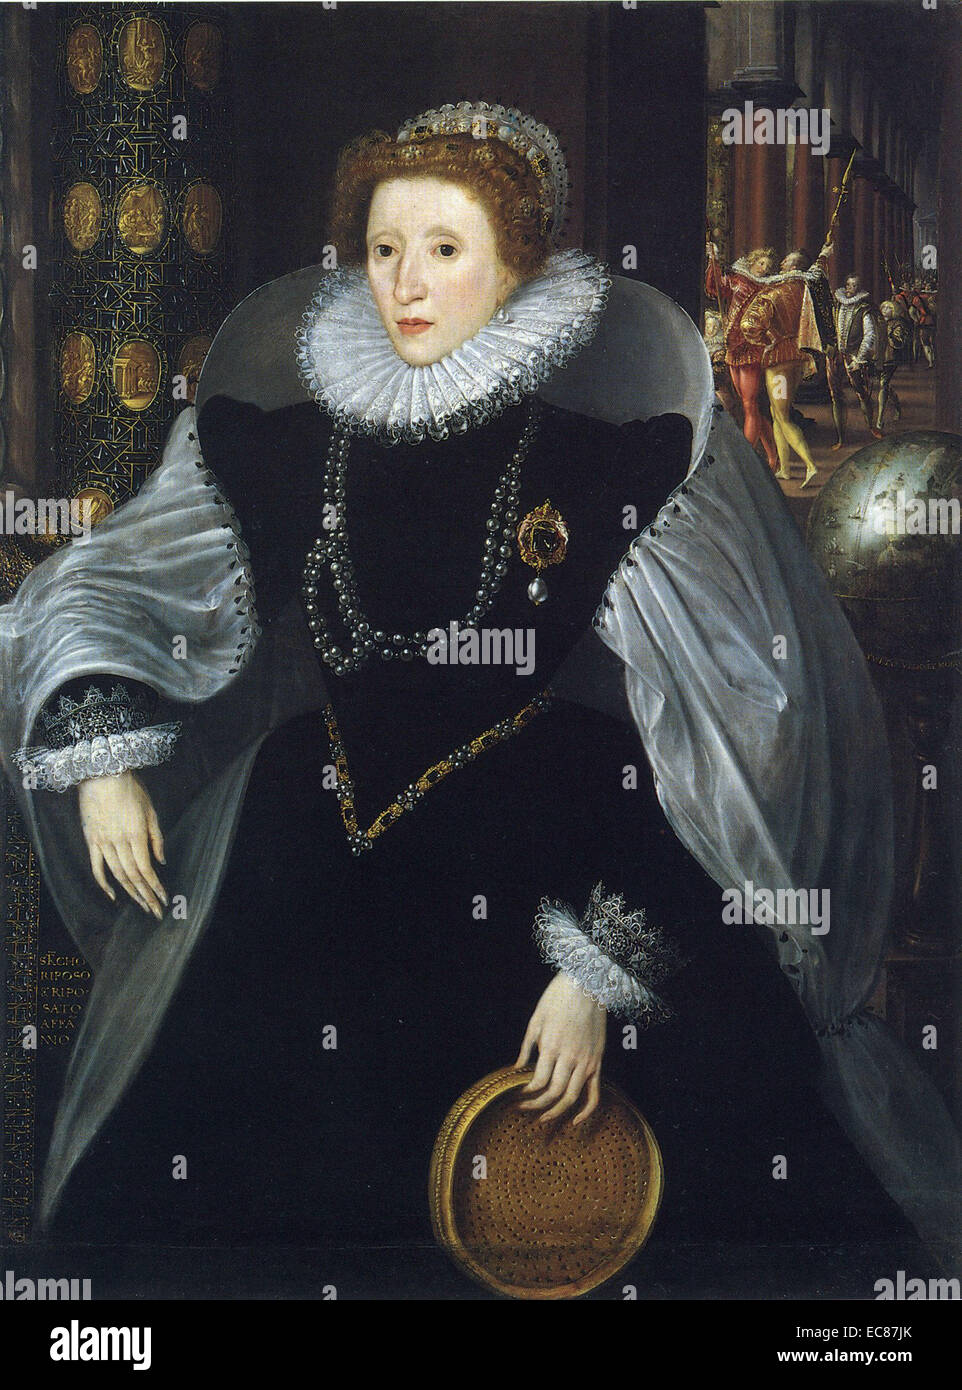 Portrait of Queen Elizabeth I. Painted by Quentin Metsys the Younger (1543-1589). Dated 16th Century - Stock Image